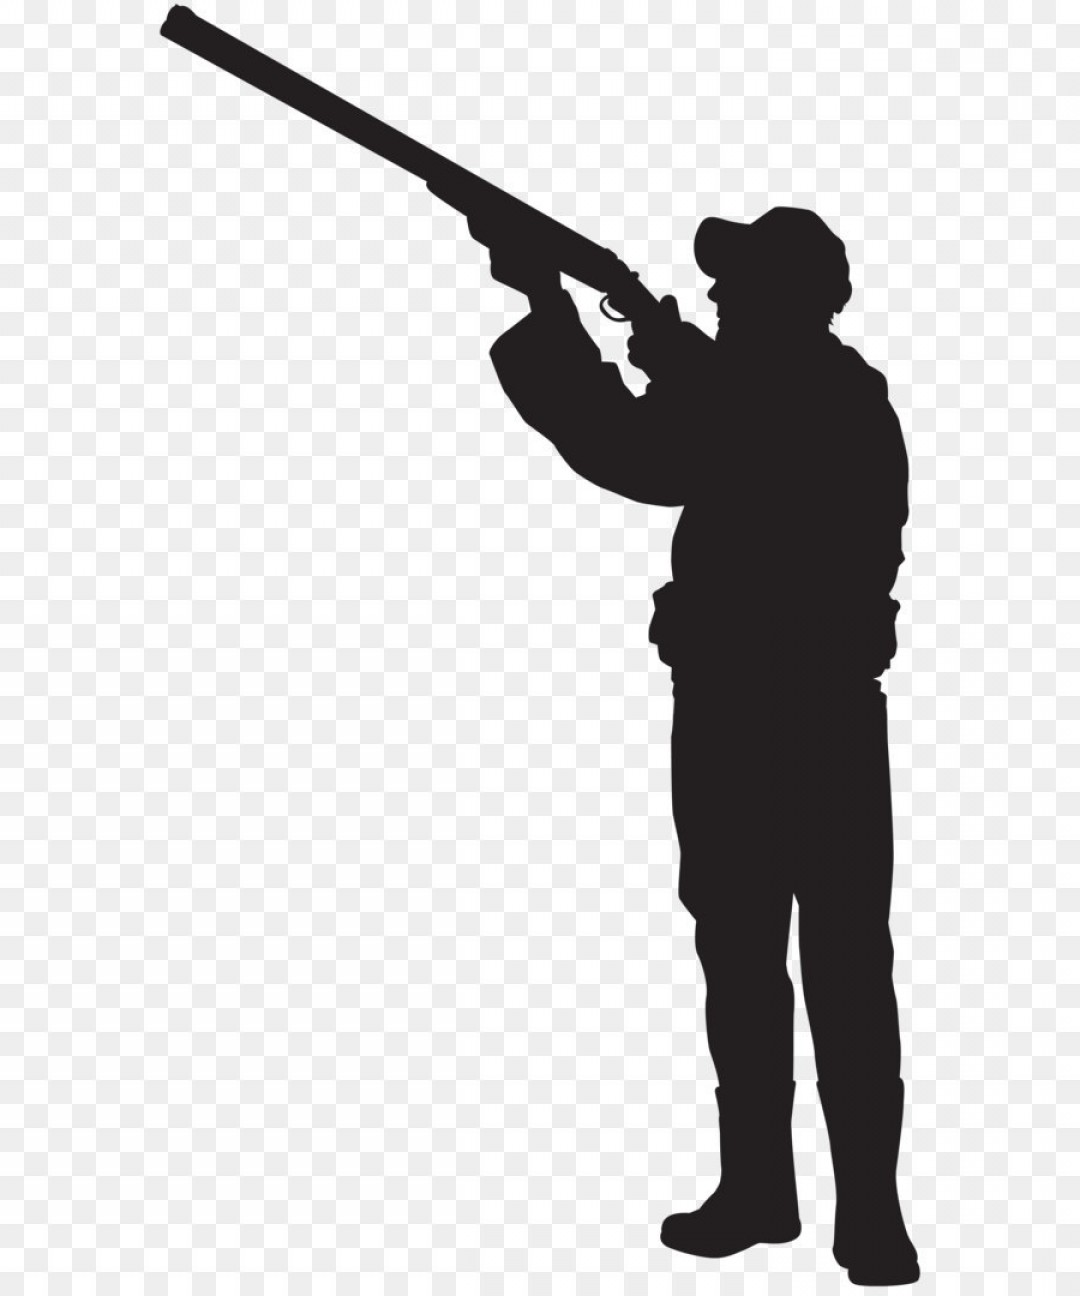 Png Hunter Silhouette Png Clip Art Image.